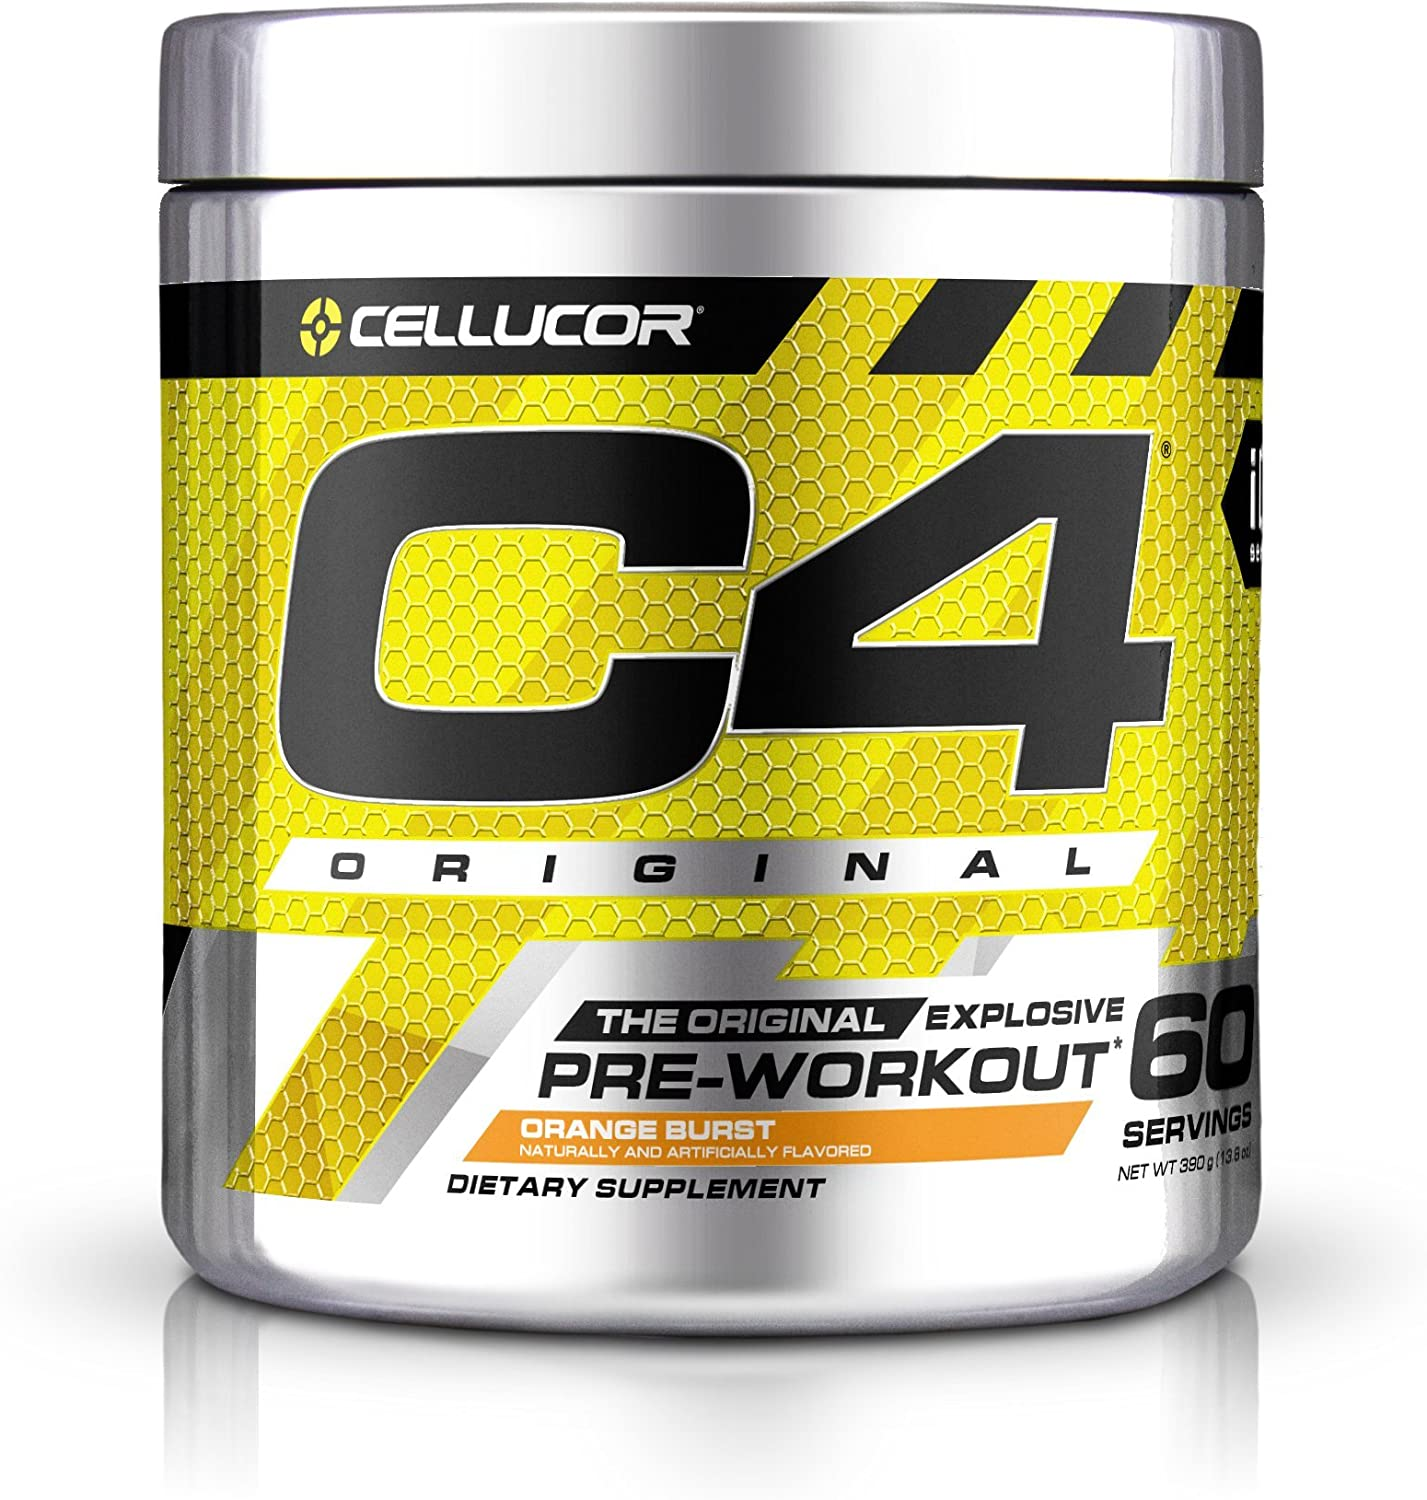 Cellucor C4 Original, Orange Burst 60 Servings, 0.9 Pound